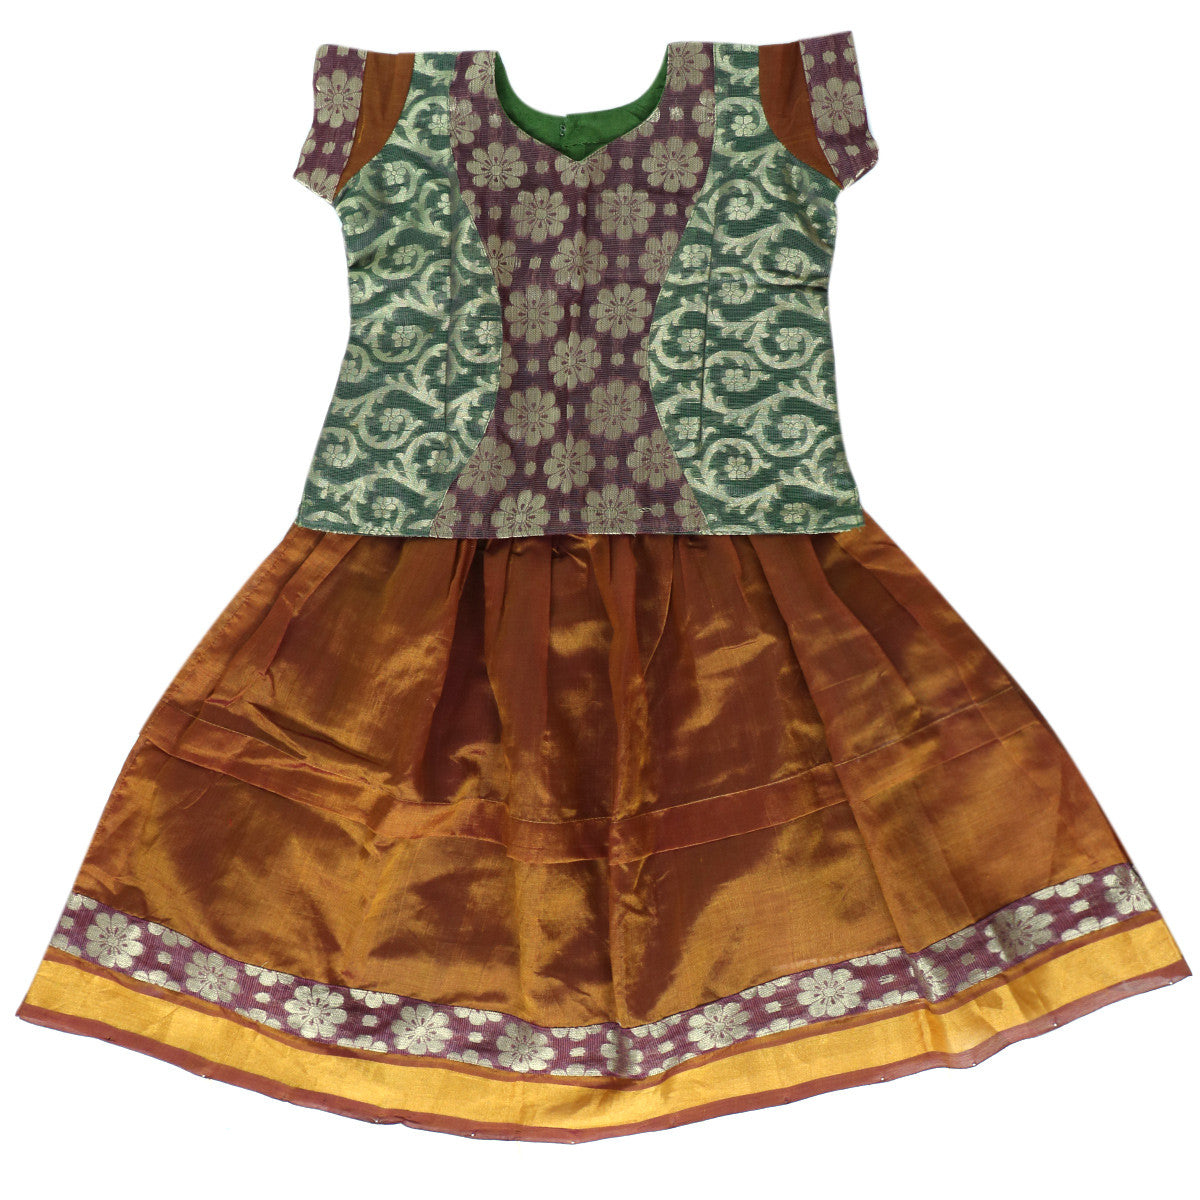 Silk Cotton Paavadai Sattai - Green and Rust Green with Simple Border (3 Years)